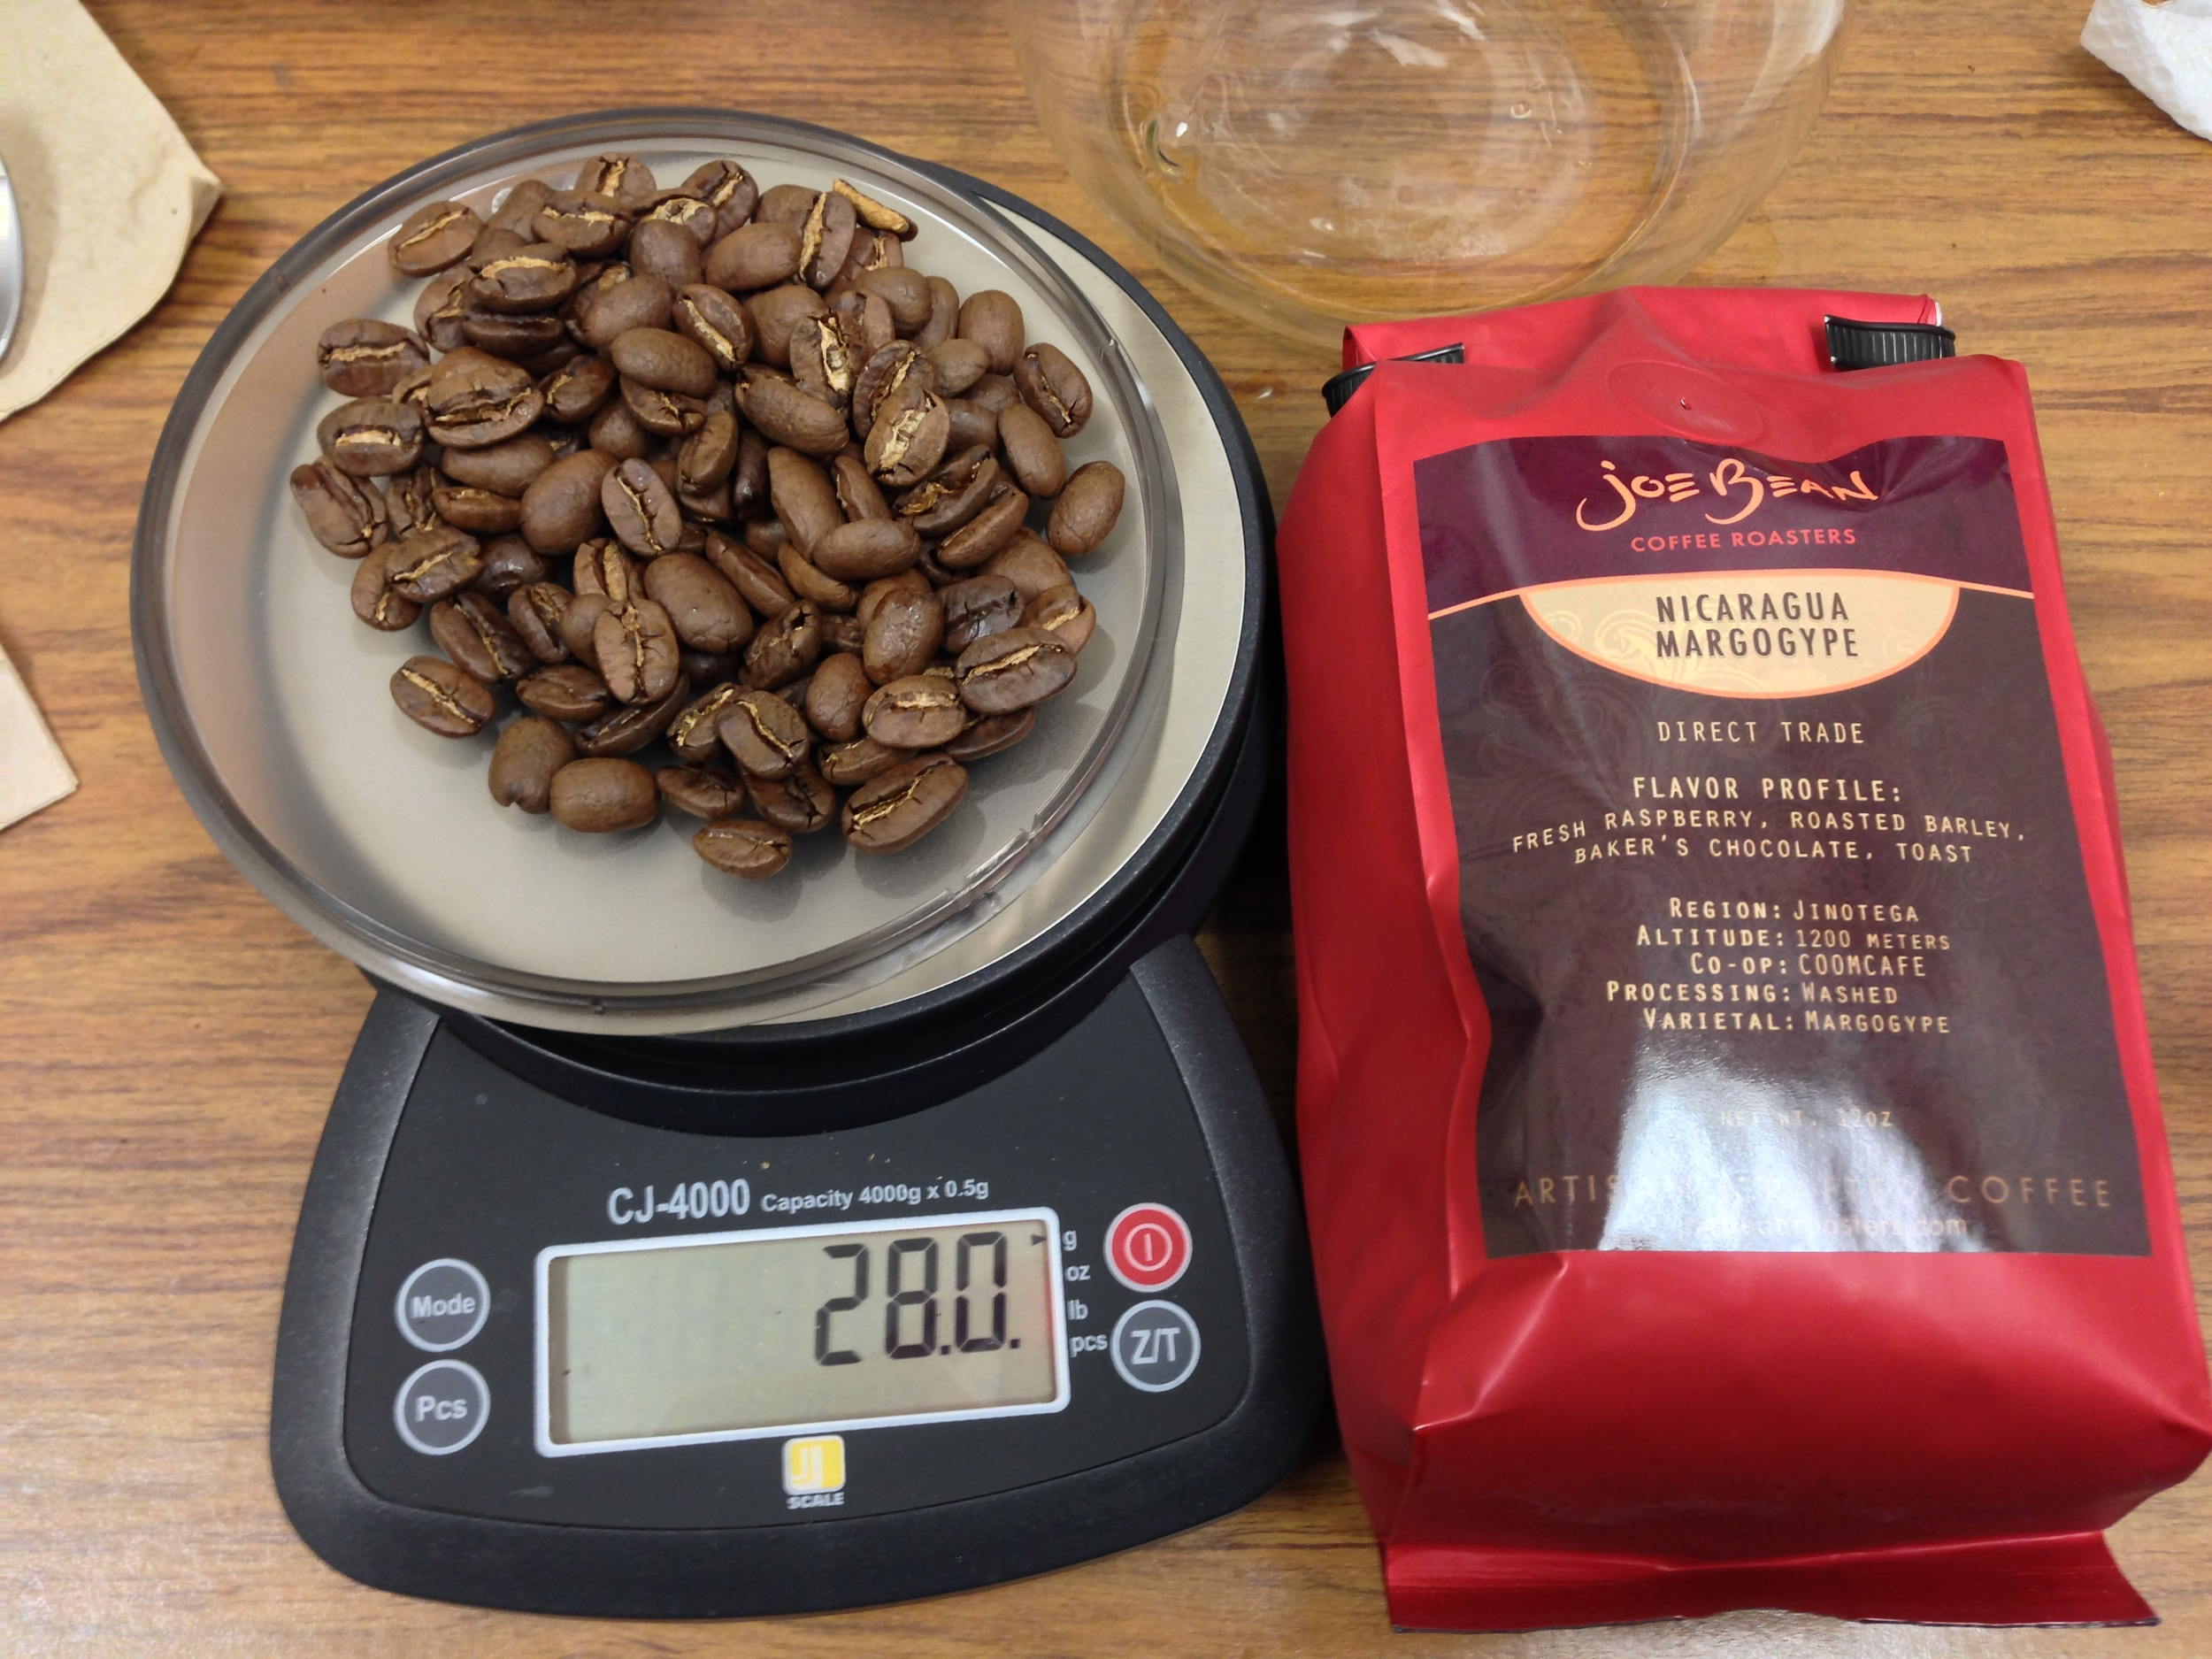 Freshly roasted coffee (2 days) from Joe Bean Coffee Roasters